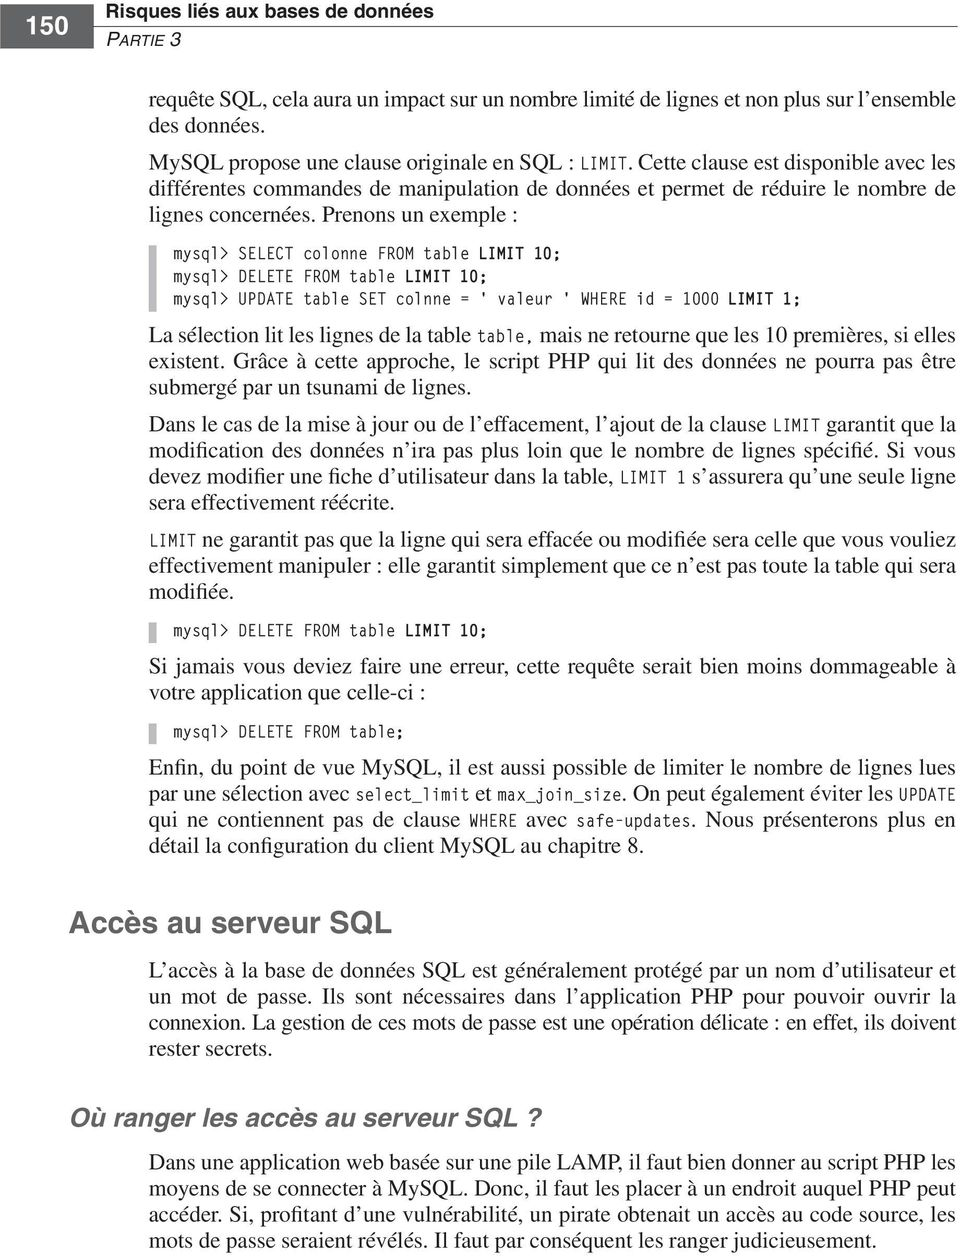 Prenons un exemple : mysql> SELECT colonne FROM table LIMIT 10; mysql> DELETE FROM table LIMIT 10; mysql> UPDATE table SET colnne = ' valeur ' WHERE id = 1000 LIMIT 1; La sélection lit les lignes de